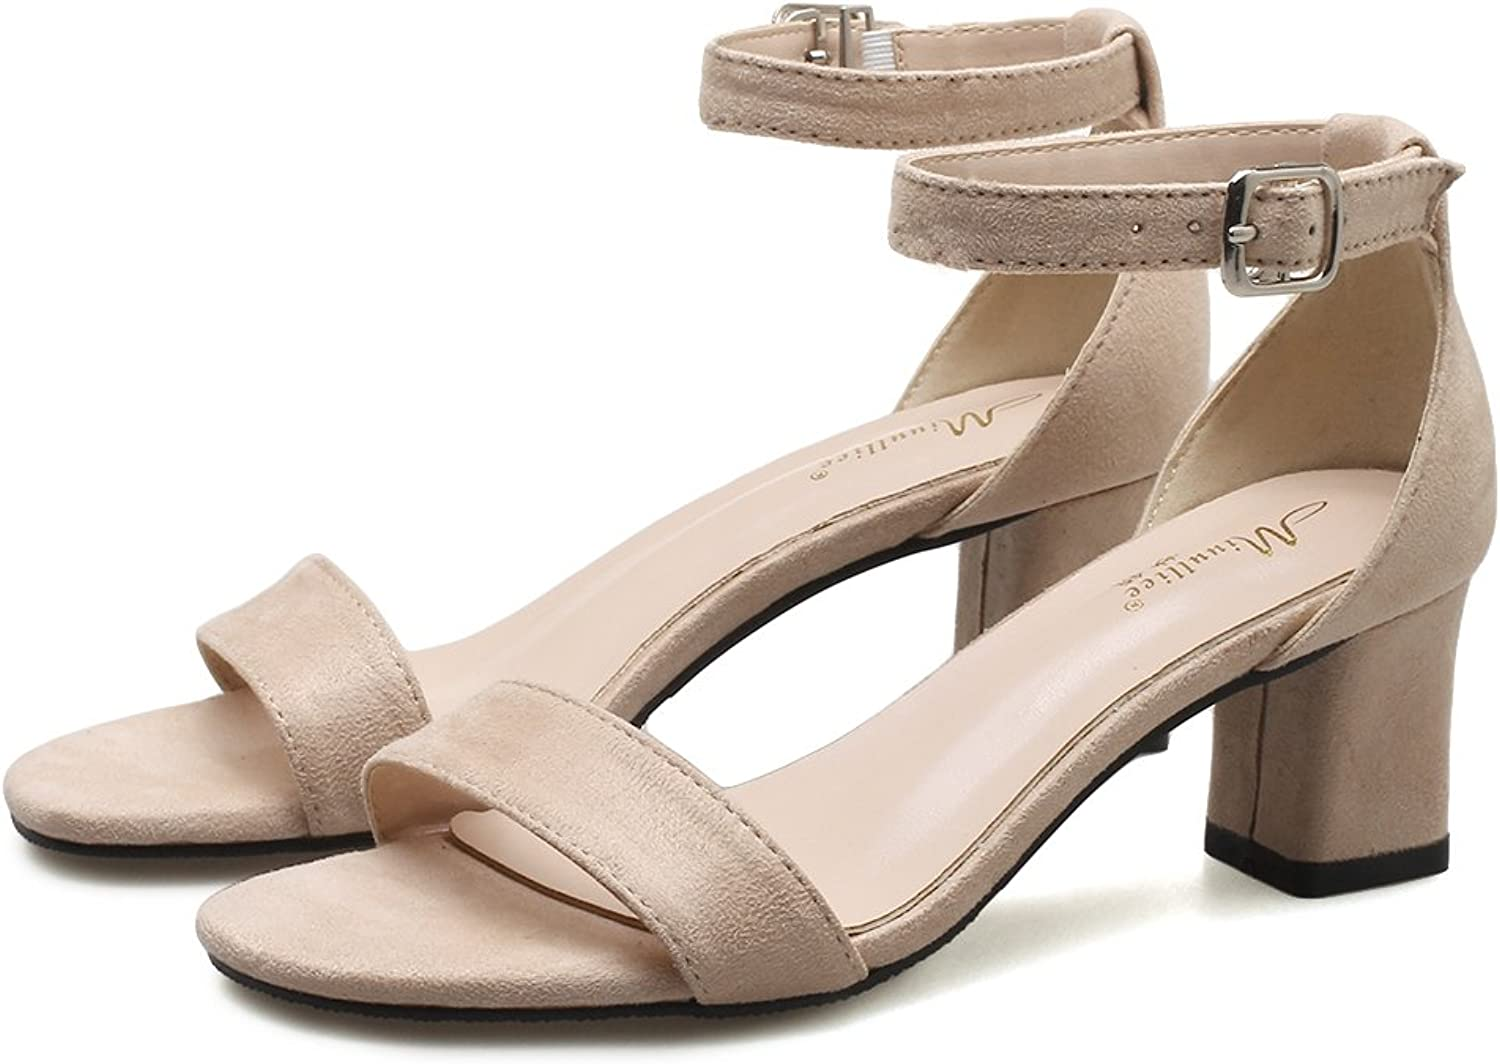 GAOLIM Dew-Slotted Strap Sandals, With Thick With High Heels Sandals Women Summer Women shoes